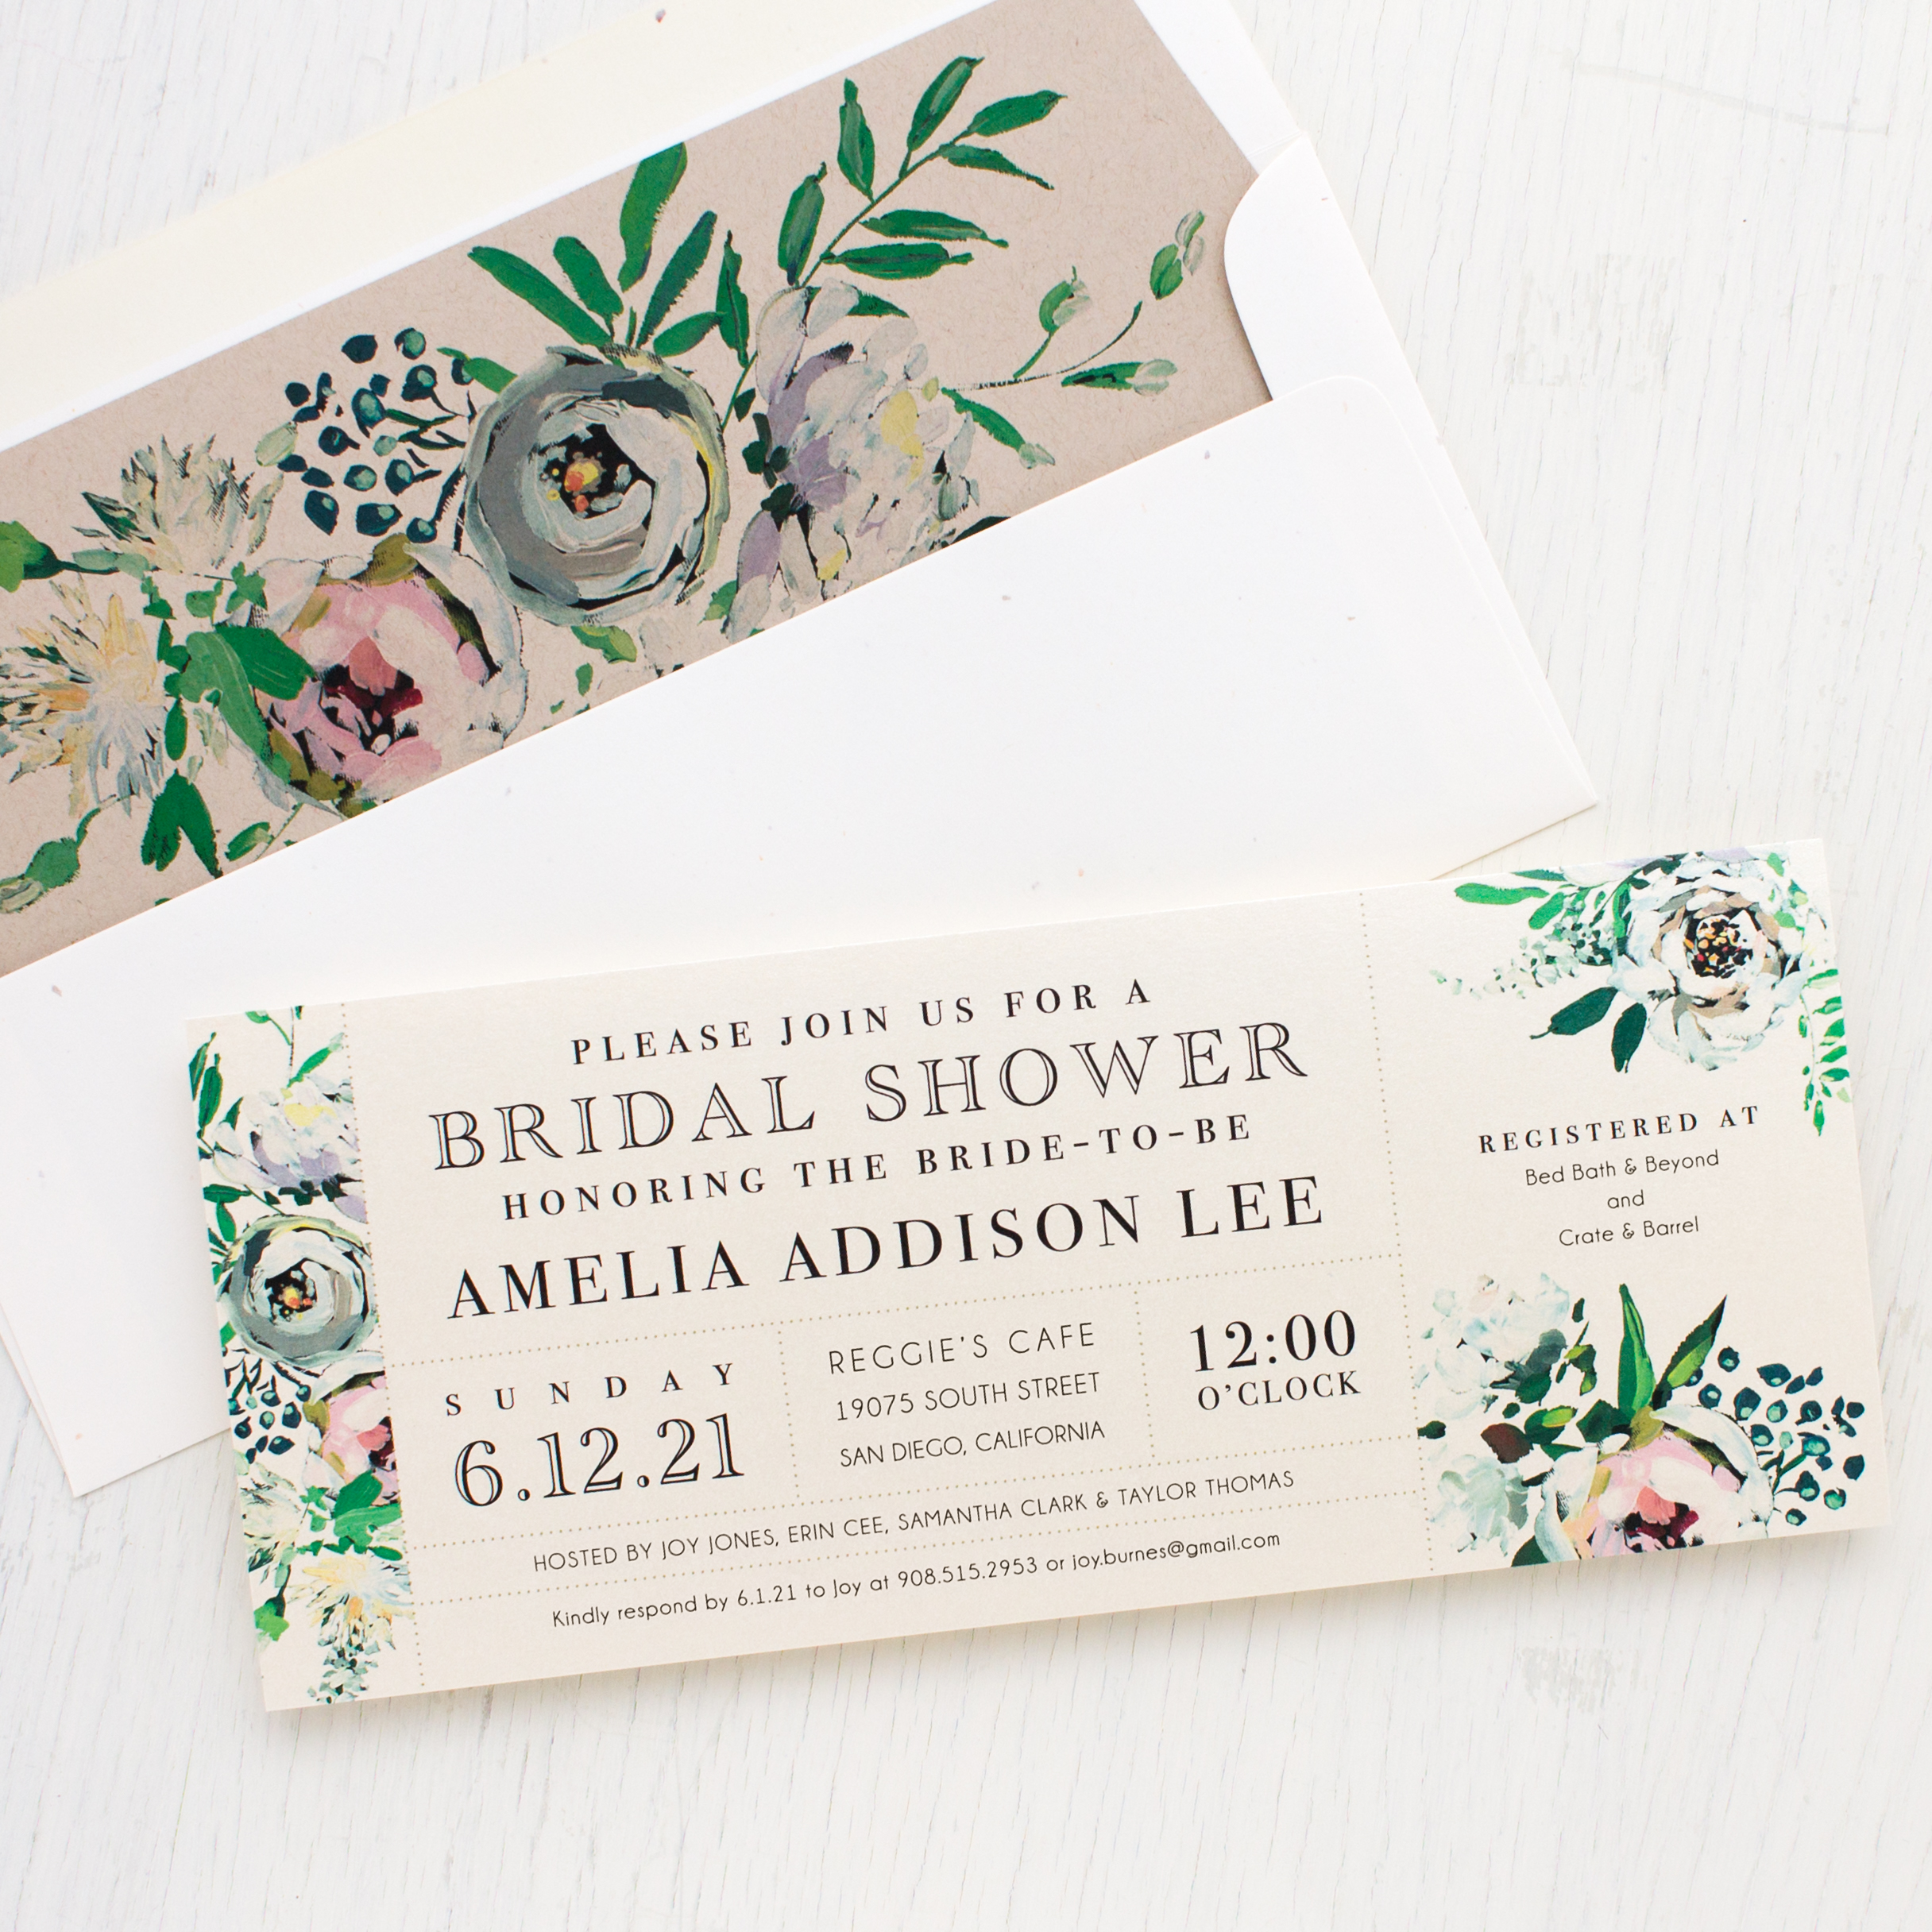 Painted garden bridal shower invitations beacon lane painted garden bridal shower invitations filmwisefo